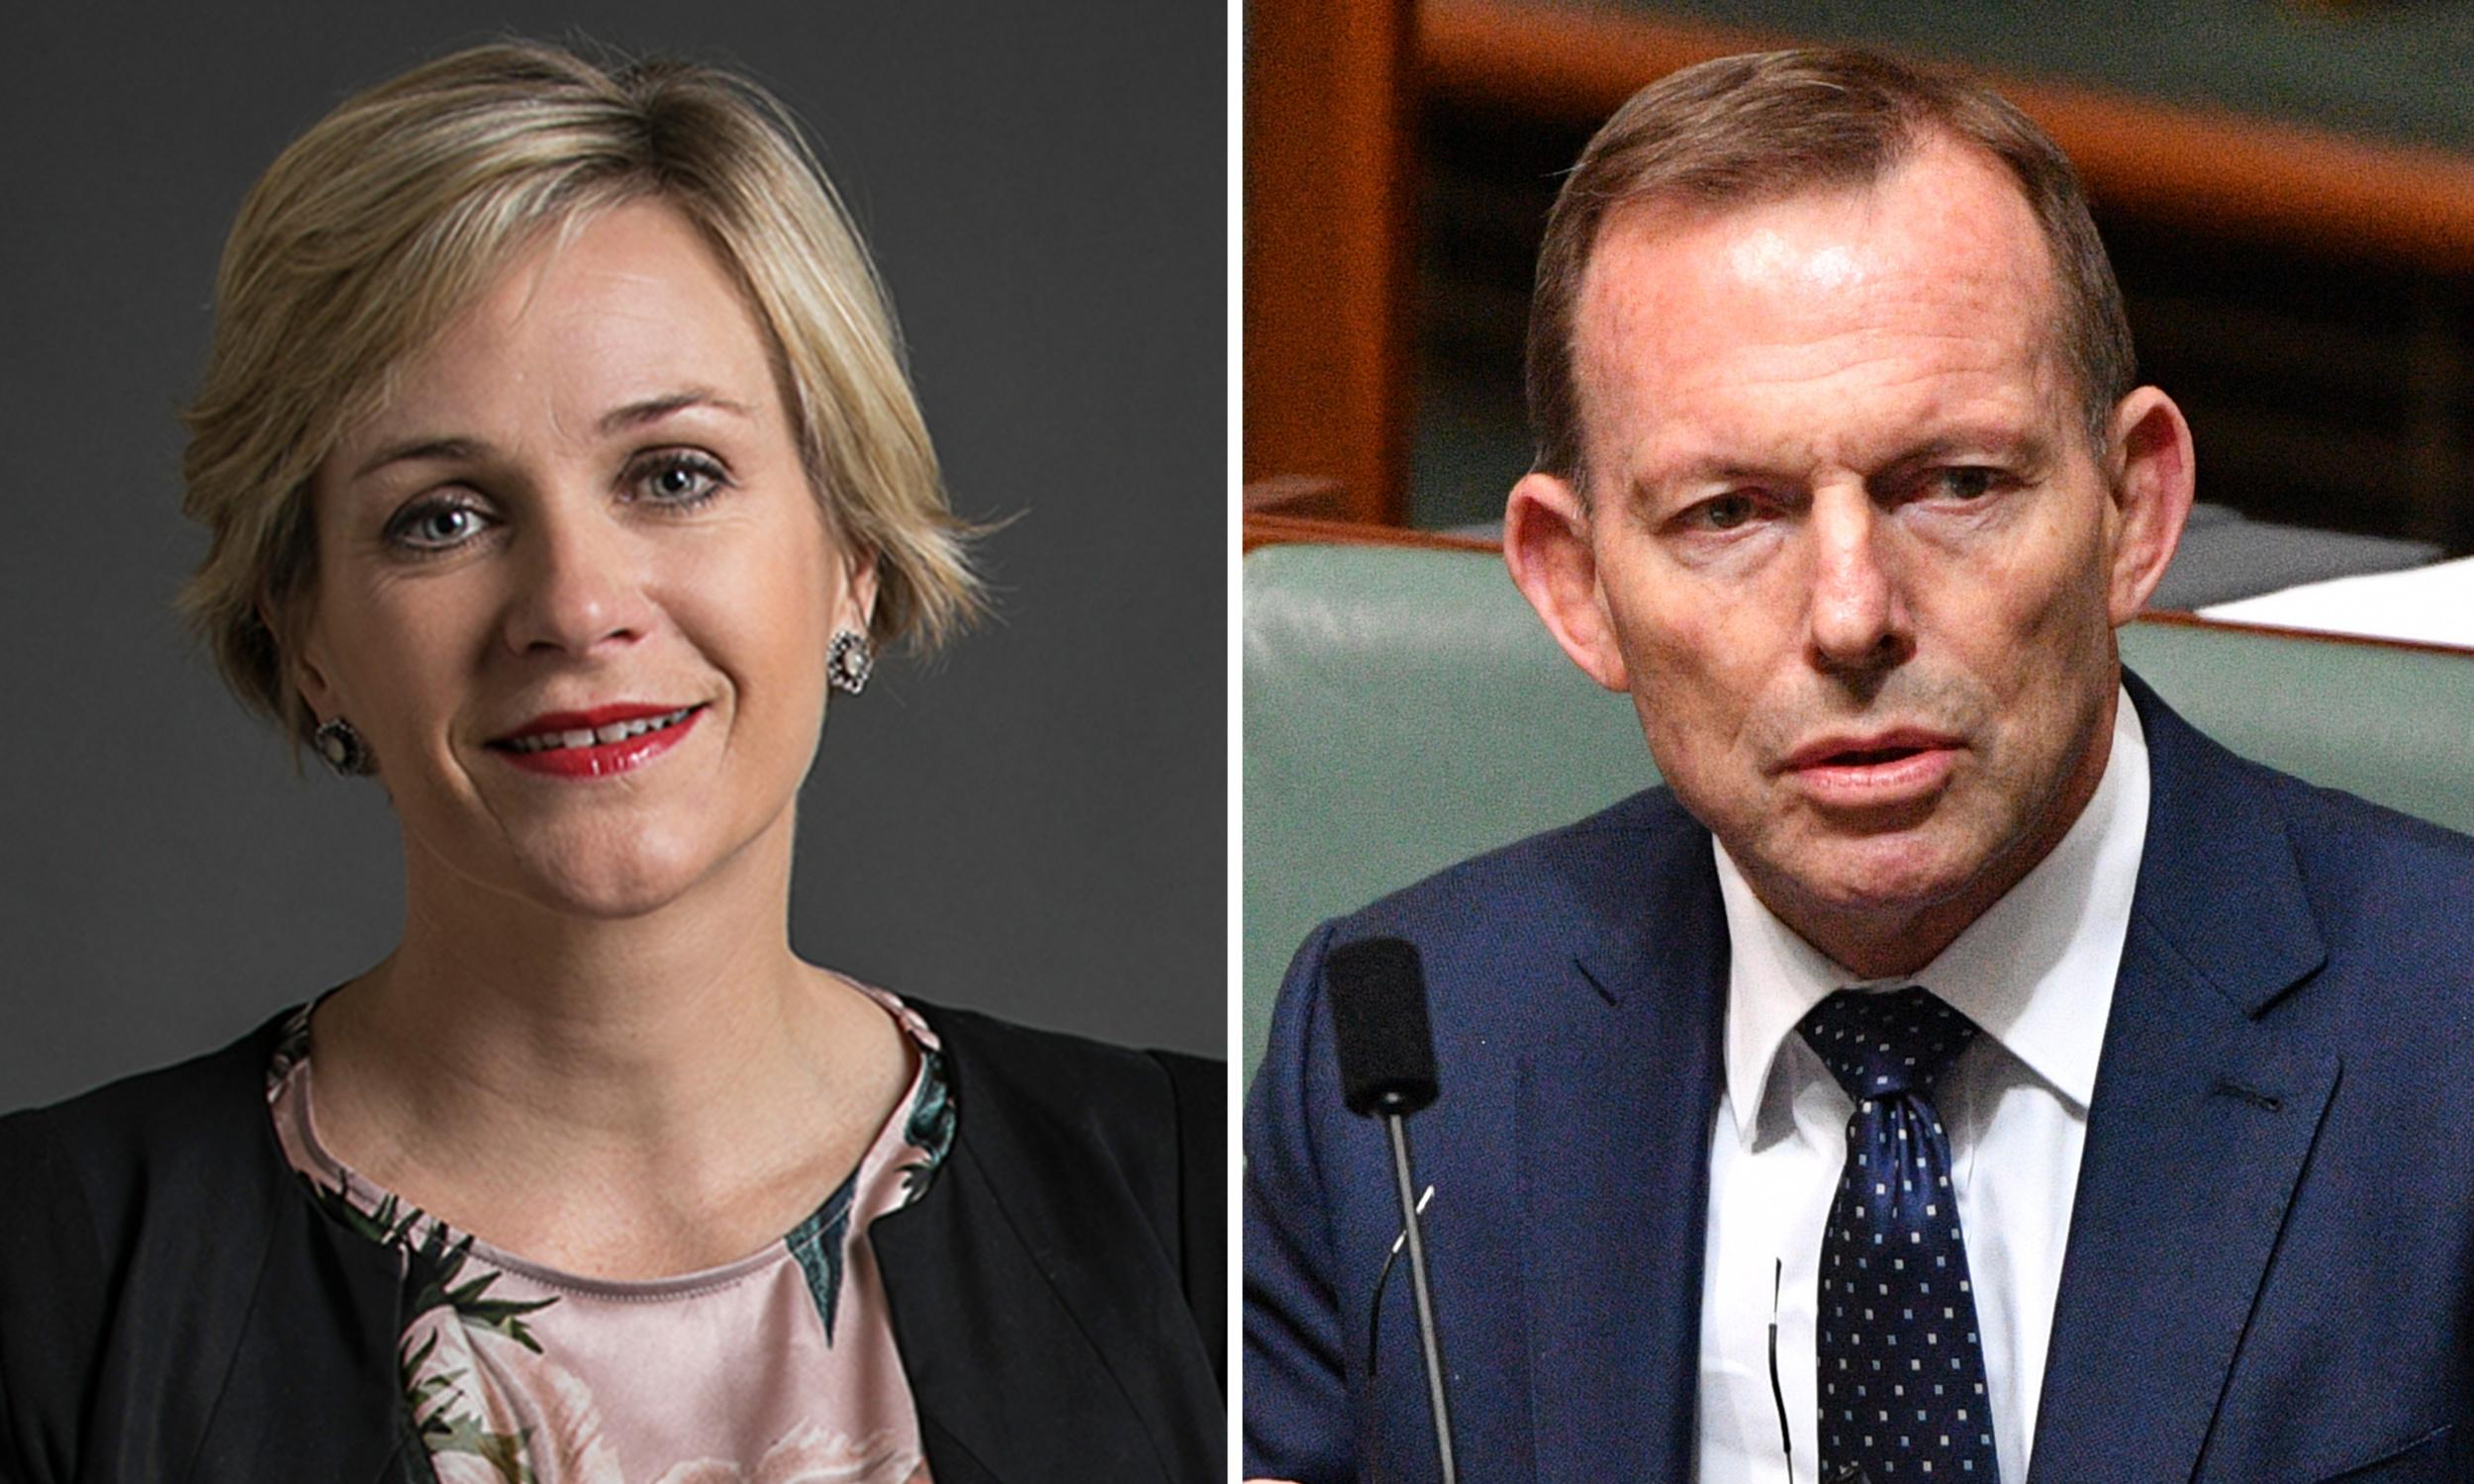 Tony Abbott on track to lose Warringah to Zali Steggall, poll shows